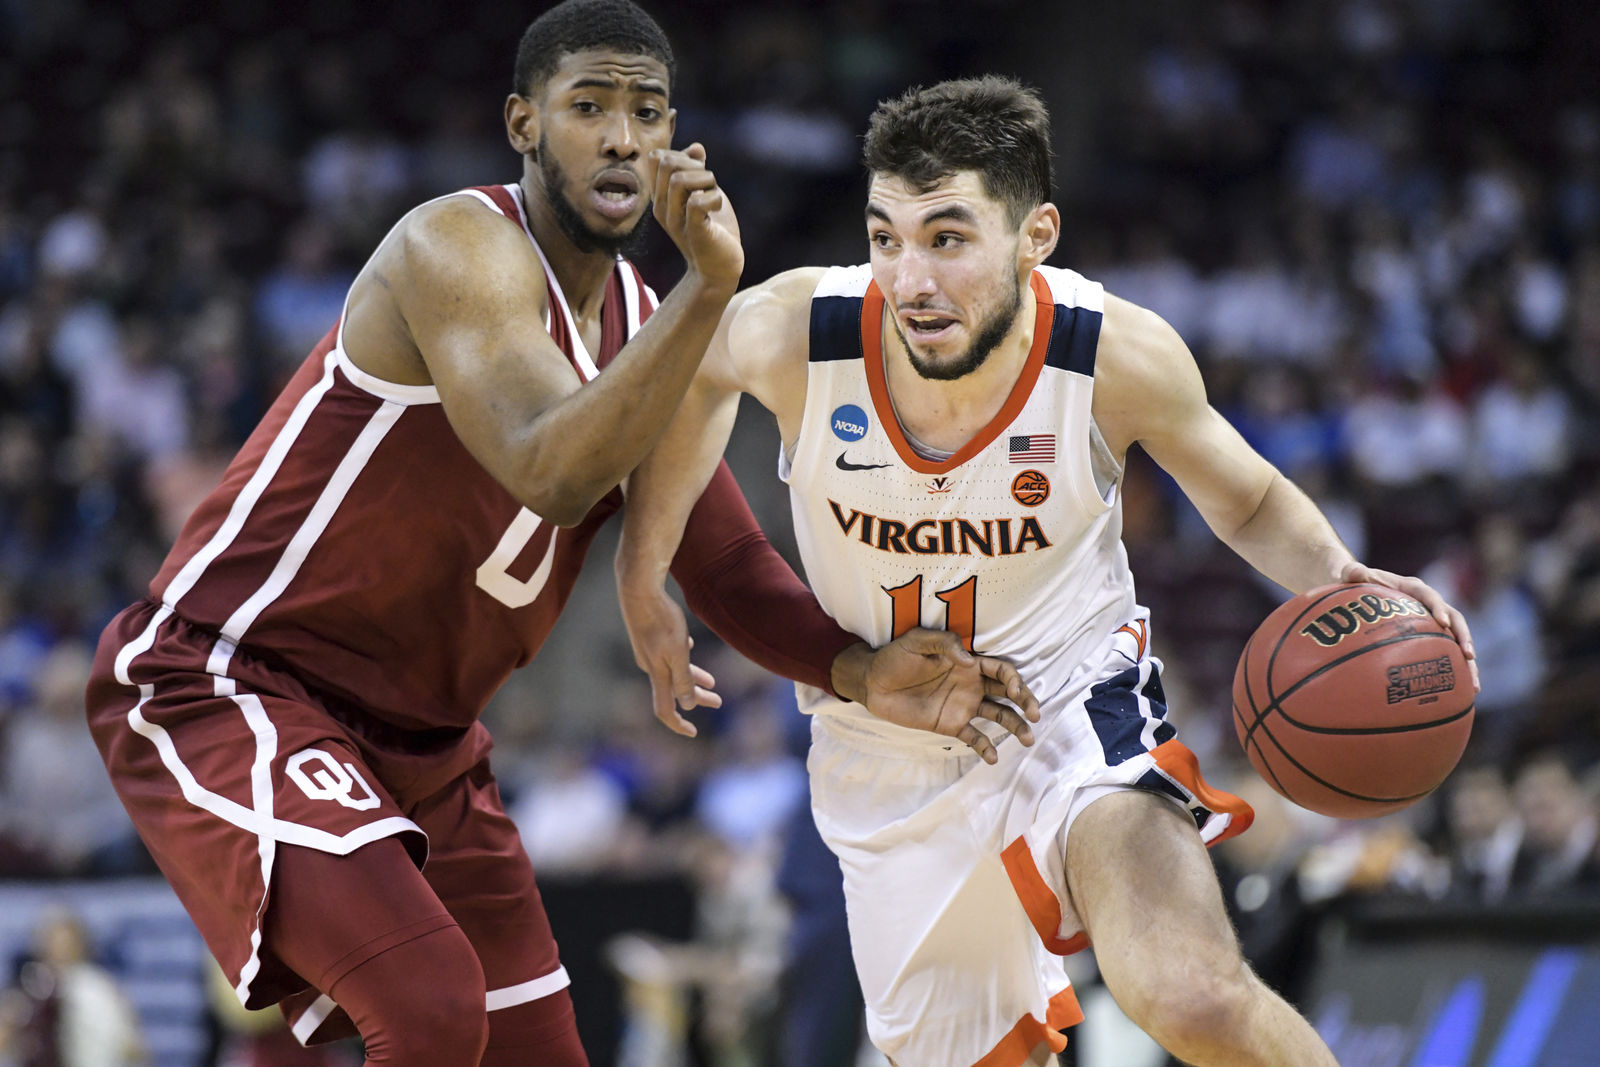 FILE - In this March 24, 2019, file photo, Virginia guard Ty Jerome (11) dribbles the ball as Oklahoma guard Christian James defends during the second half of a second-round game in the NCAA men's college basketball tournament in Columbia, S.C. Jerome could go in the first round of Thursday's NBA draft and play either guard position. (AP Photo/Sean Rayford, File)